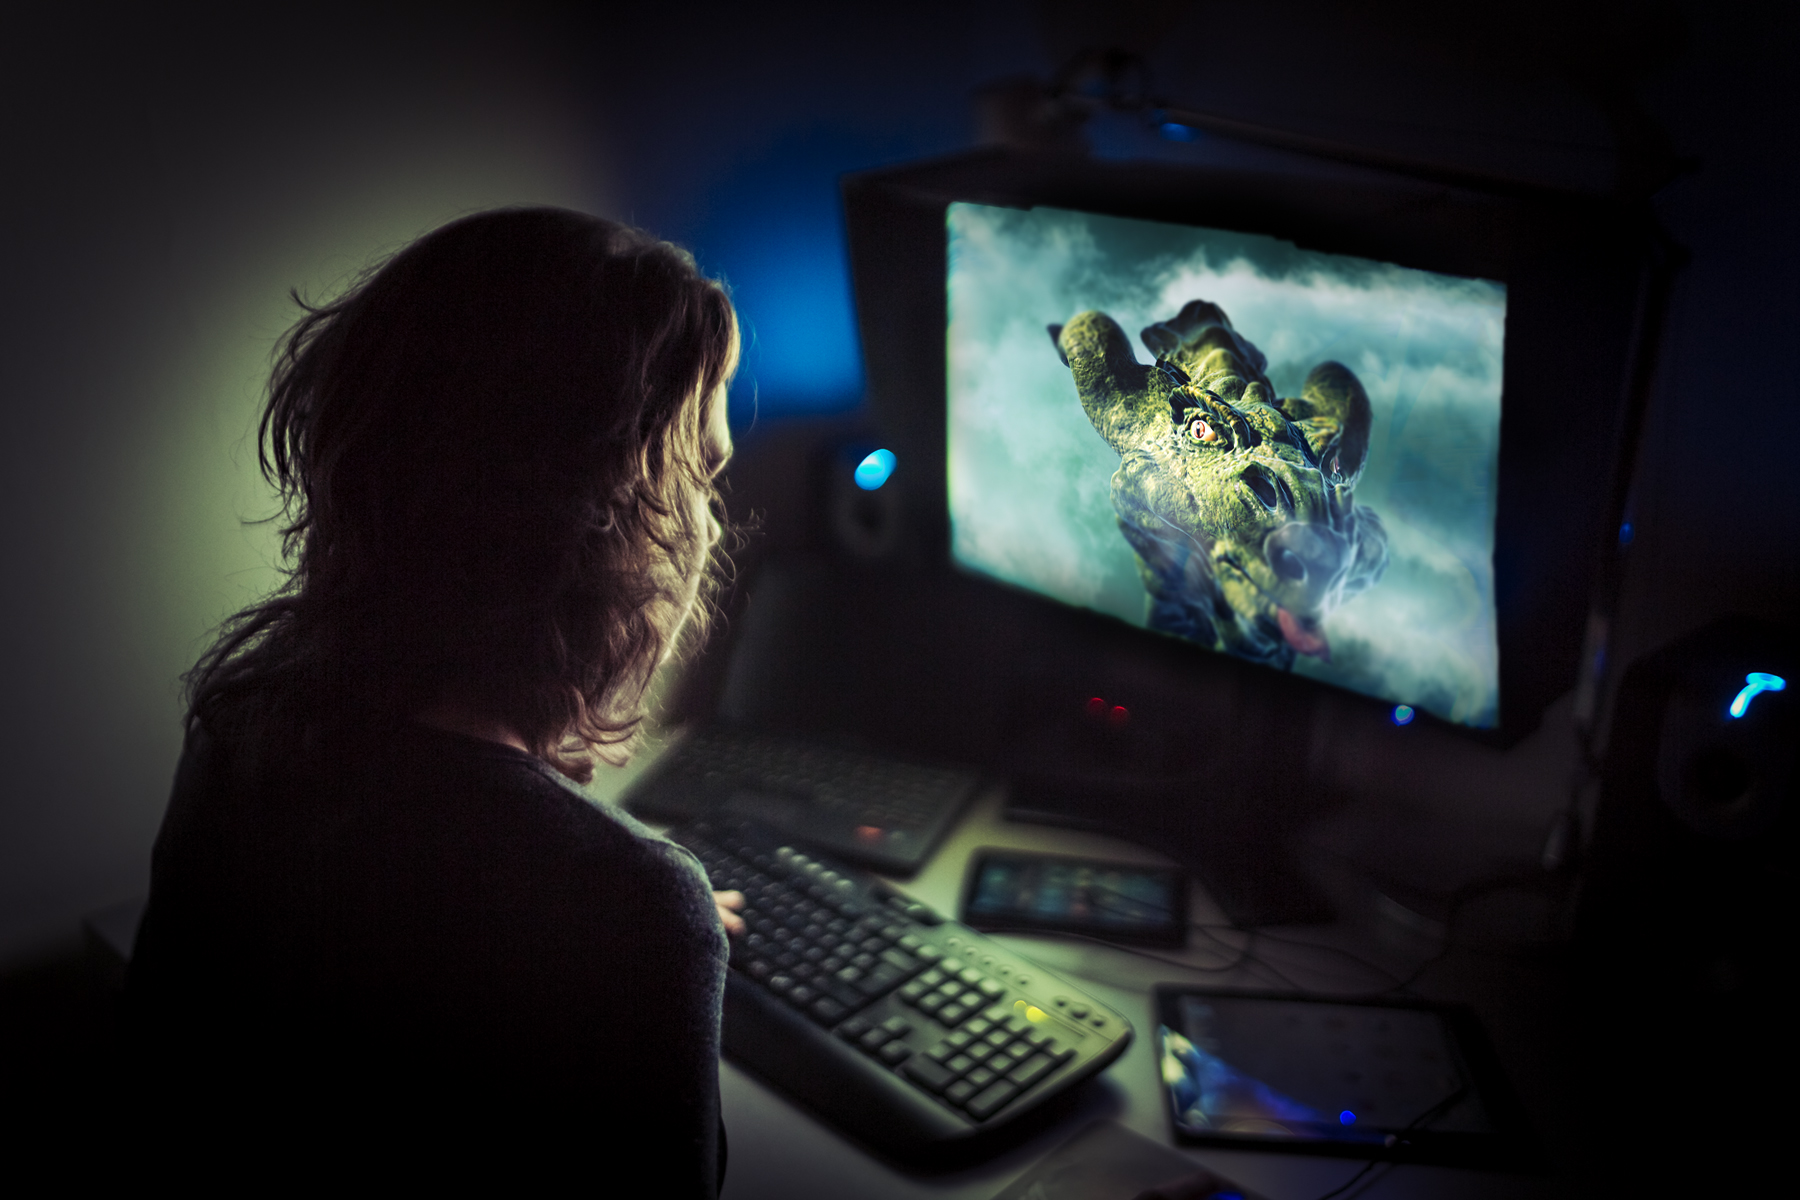 b463f5b59bd graphic artist working late at night. Dragon imagery is displayed on the  monitor